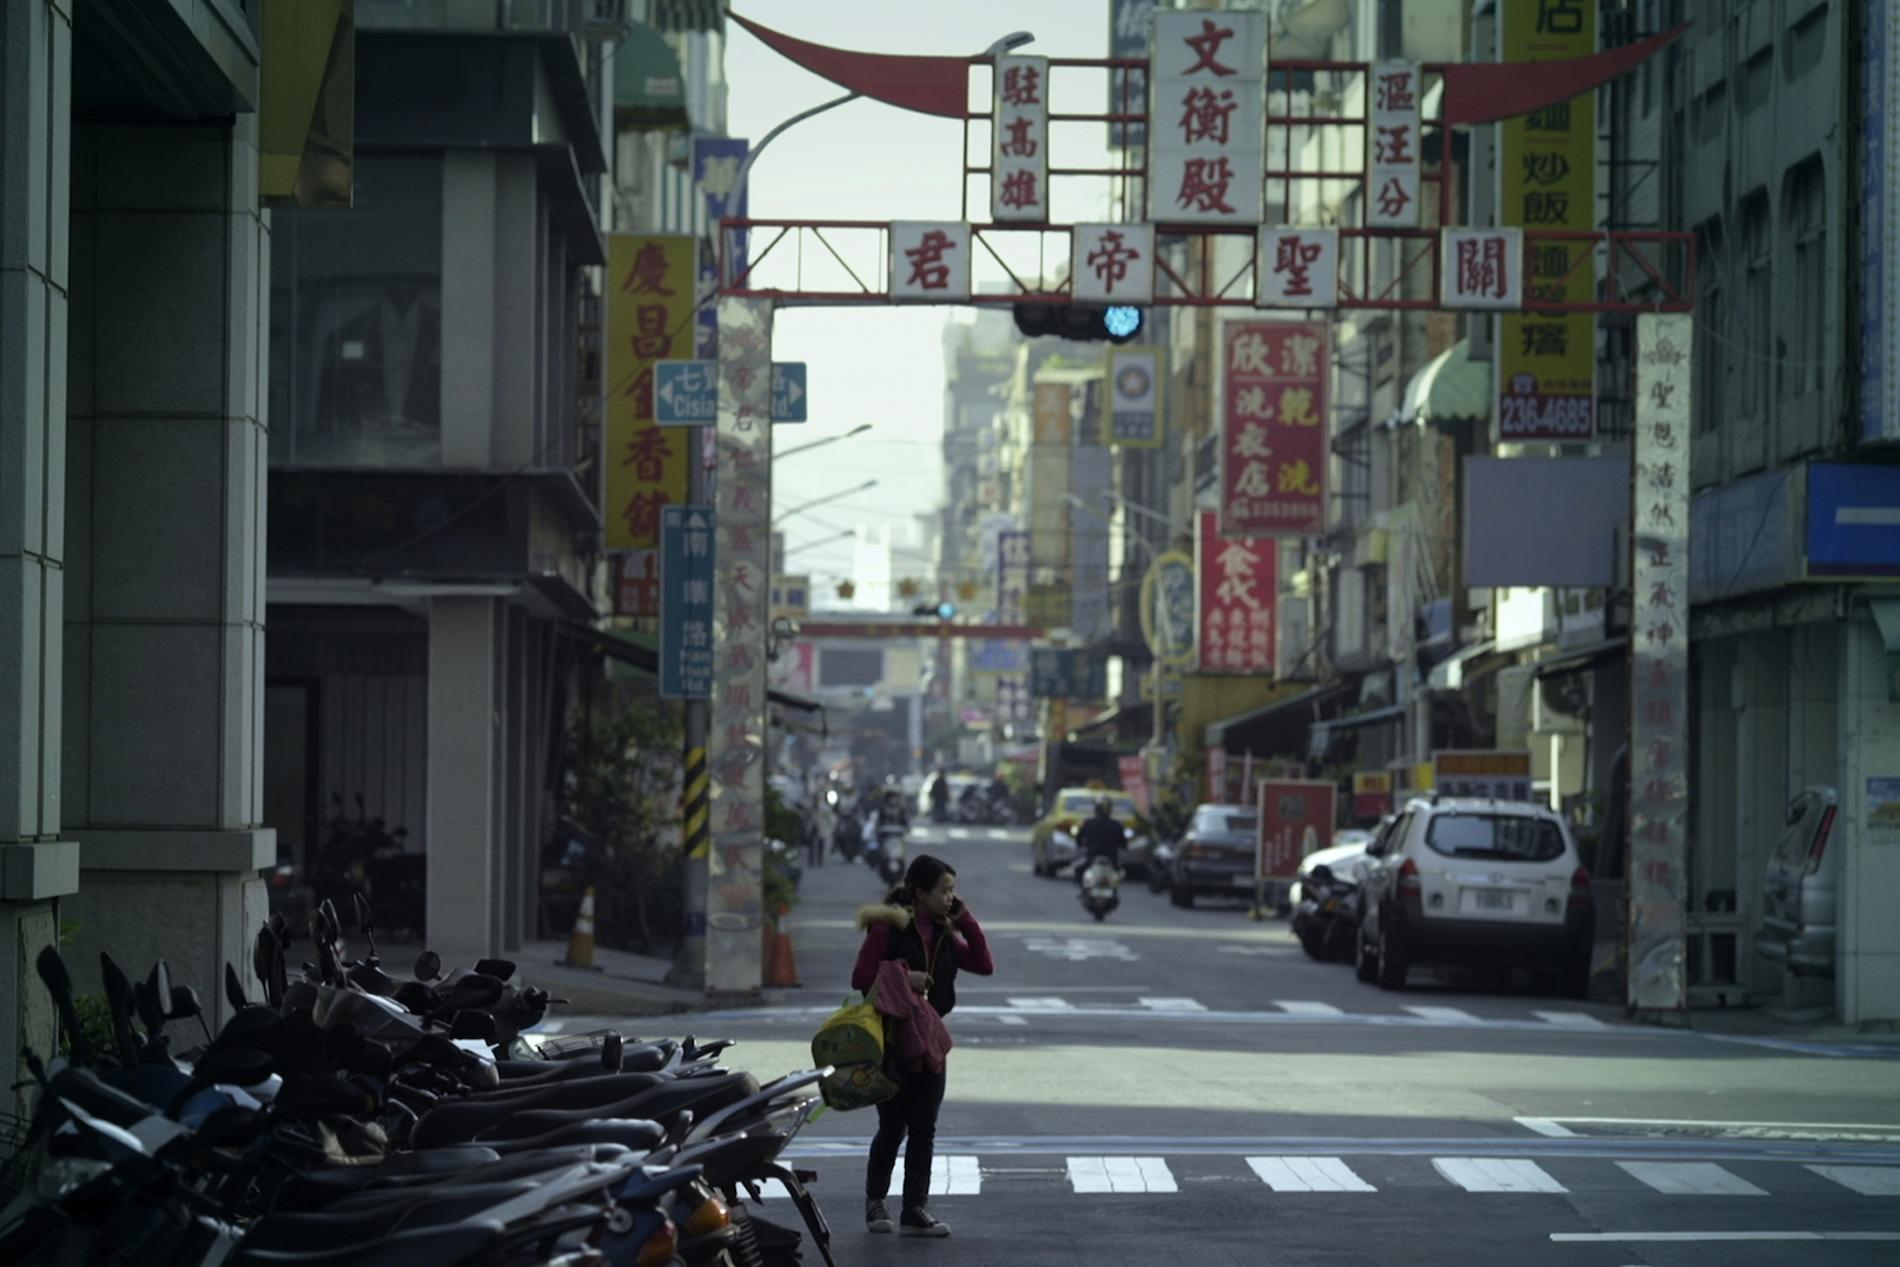 Lau Kek Huat / Malaysia / 2015 / Tagalog/Mandarin / 26min   Nia travels far from her home, Philippine, to Taiwan to work as a family maid. Nia likes to keep herself in her private room, where a door separates between her and her employers. This brings displeasure to her female employer and conflicts arise between them. This is a story about a day of Nia's life, which could also resonates for all who are far away from home.   Director:   Lau Kek Huat was born and brought up in Malaysia, but then worked as primary school teacher for 4 years in Singapore. In 2006, he enrolled in film studies at the National Taiwan University. He has twice won the Best Short Film Award at the Taiwan Golden Harvest Festival, and the Best Director Award in 2009. His latest film Nia's door won Best Short Film Award, Sonje Award in Busan International film festival l, selected for 38th Clermont Ferrand International Short Film Festival. His written first feature film A Love of Boluomi,depicting his own family story, also won him the Tokyo Talent Award 2015, Best Script Award in 2013 Taiwan. The same Year, Lau participated the Golden Horse Academy, led by director Hou Hsiao-hsien. He is the founder of Hummingbird Production and is currently developing his first feature.